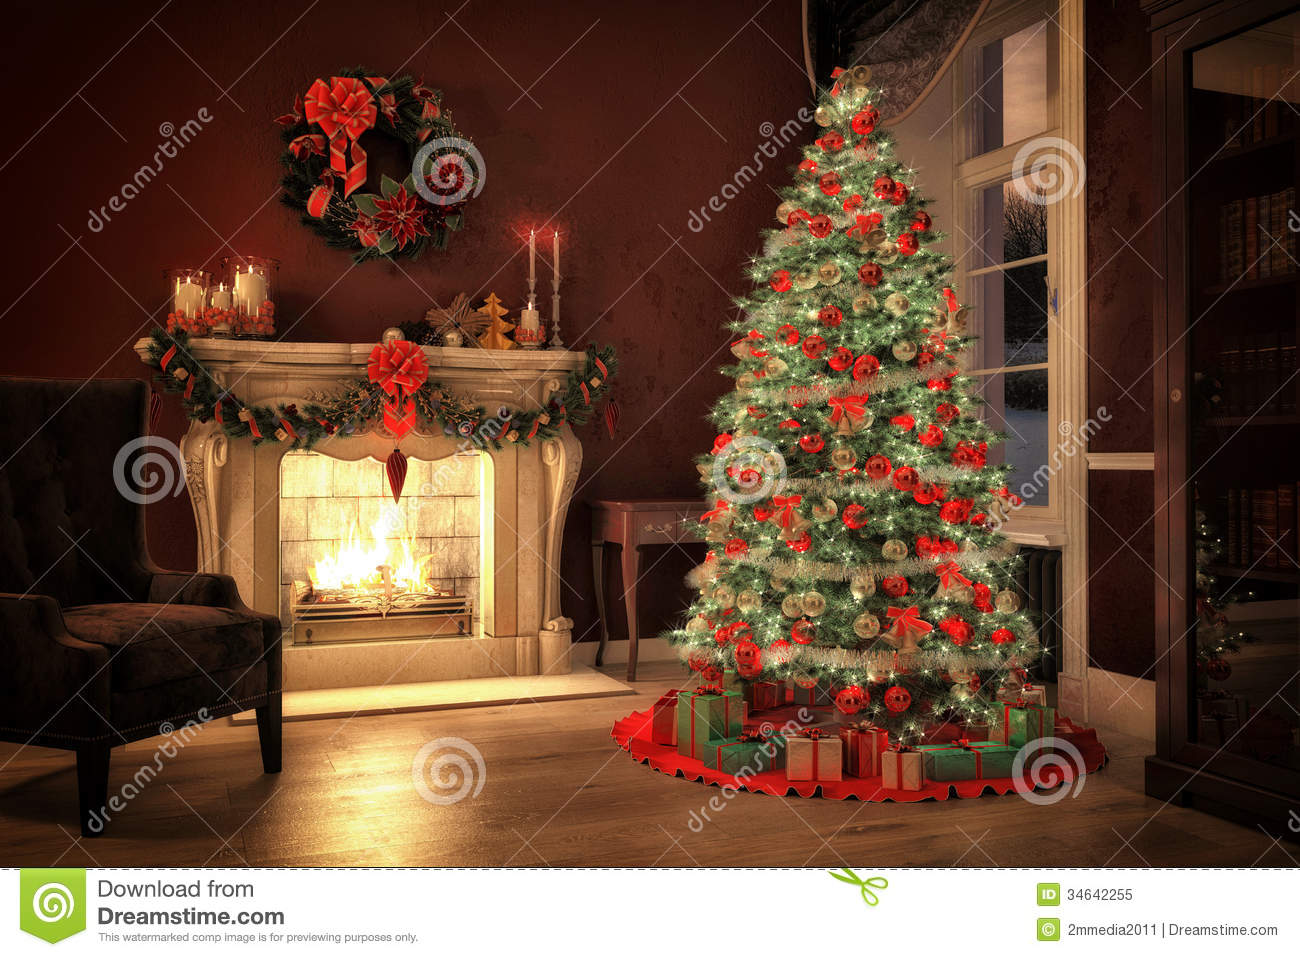 Weihnachten Dekoration Real Christmas Time Stock Illustration Image Of Winter Tree